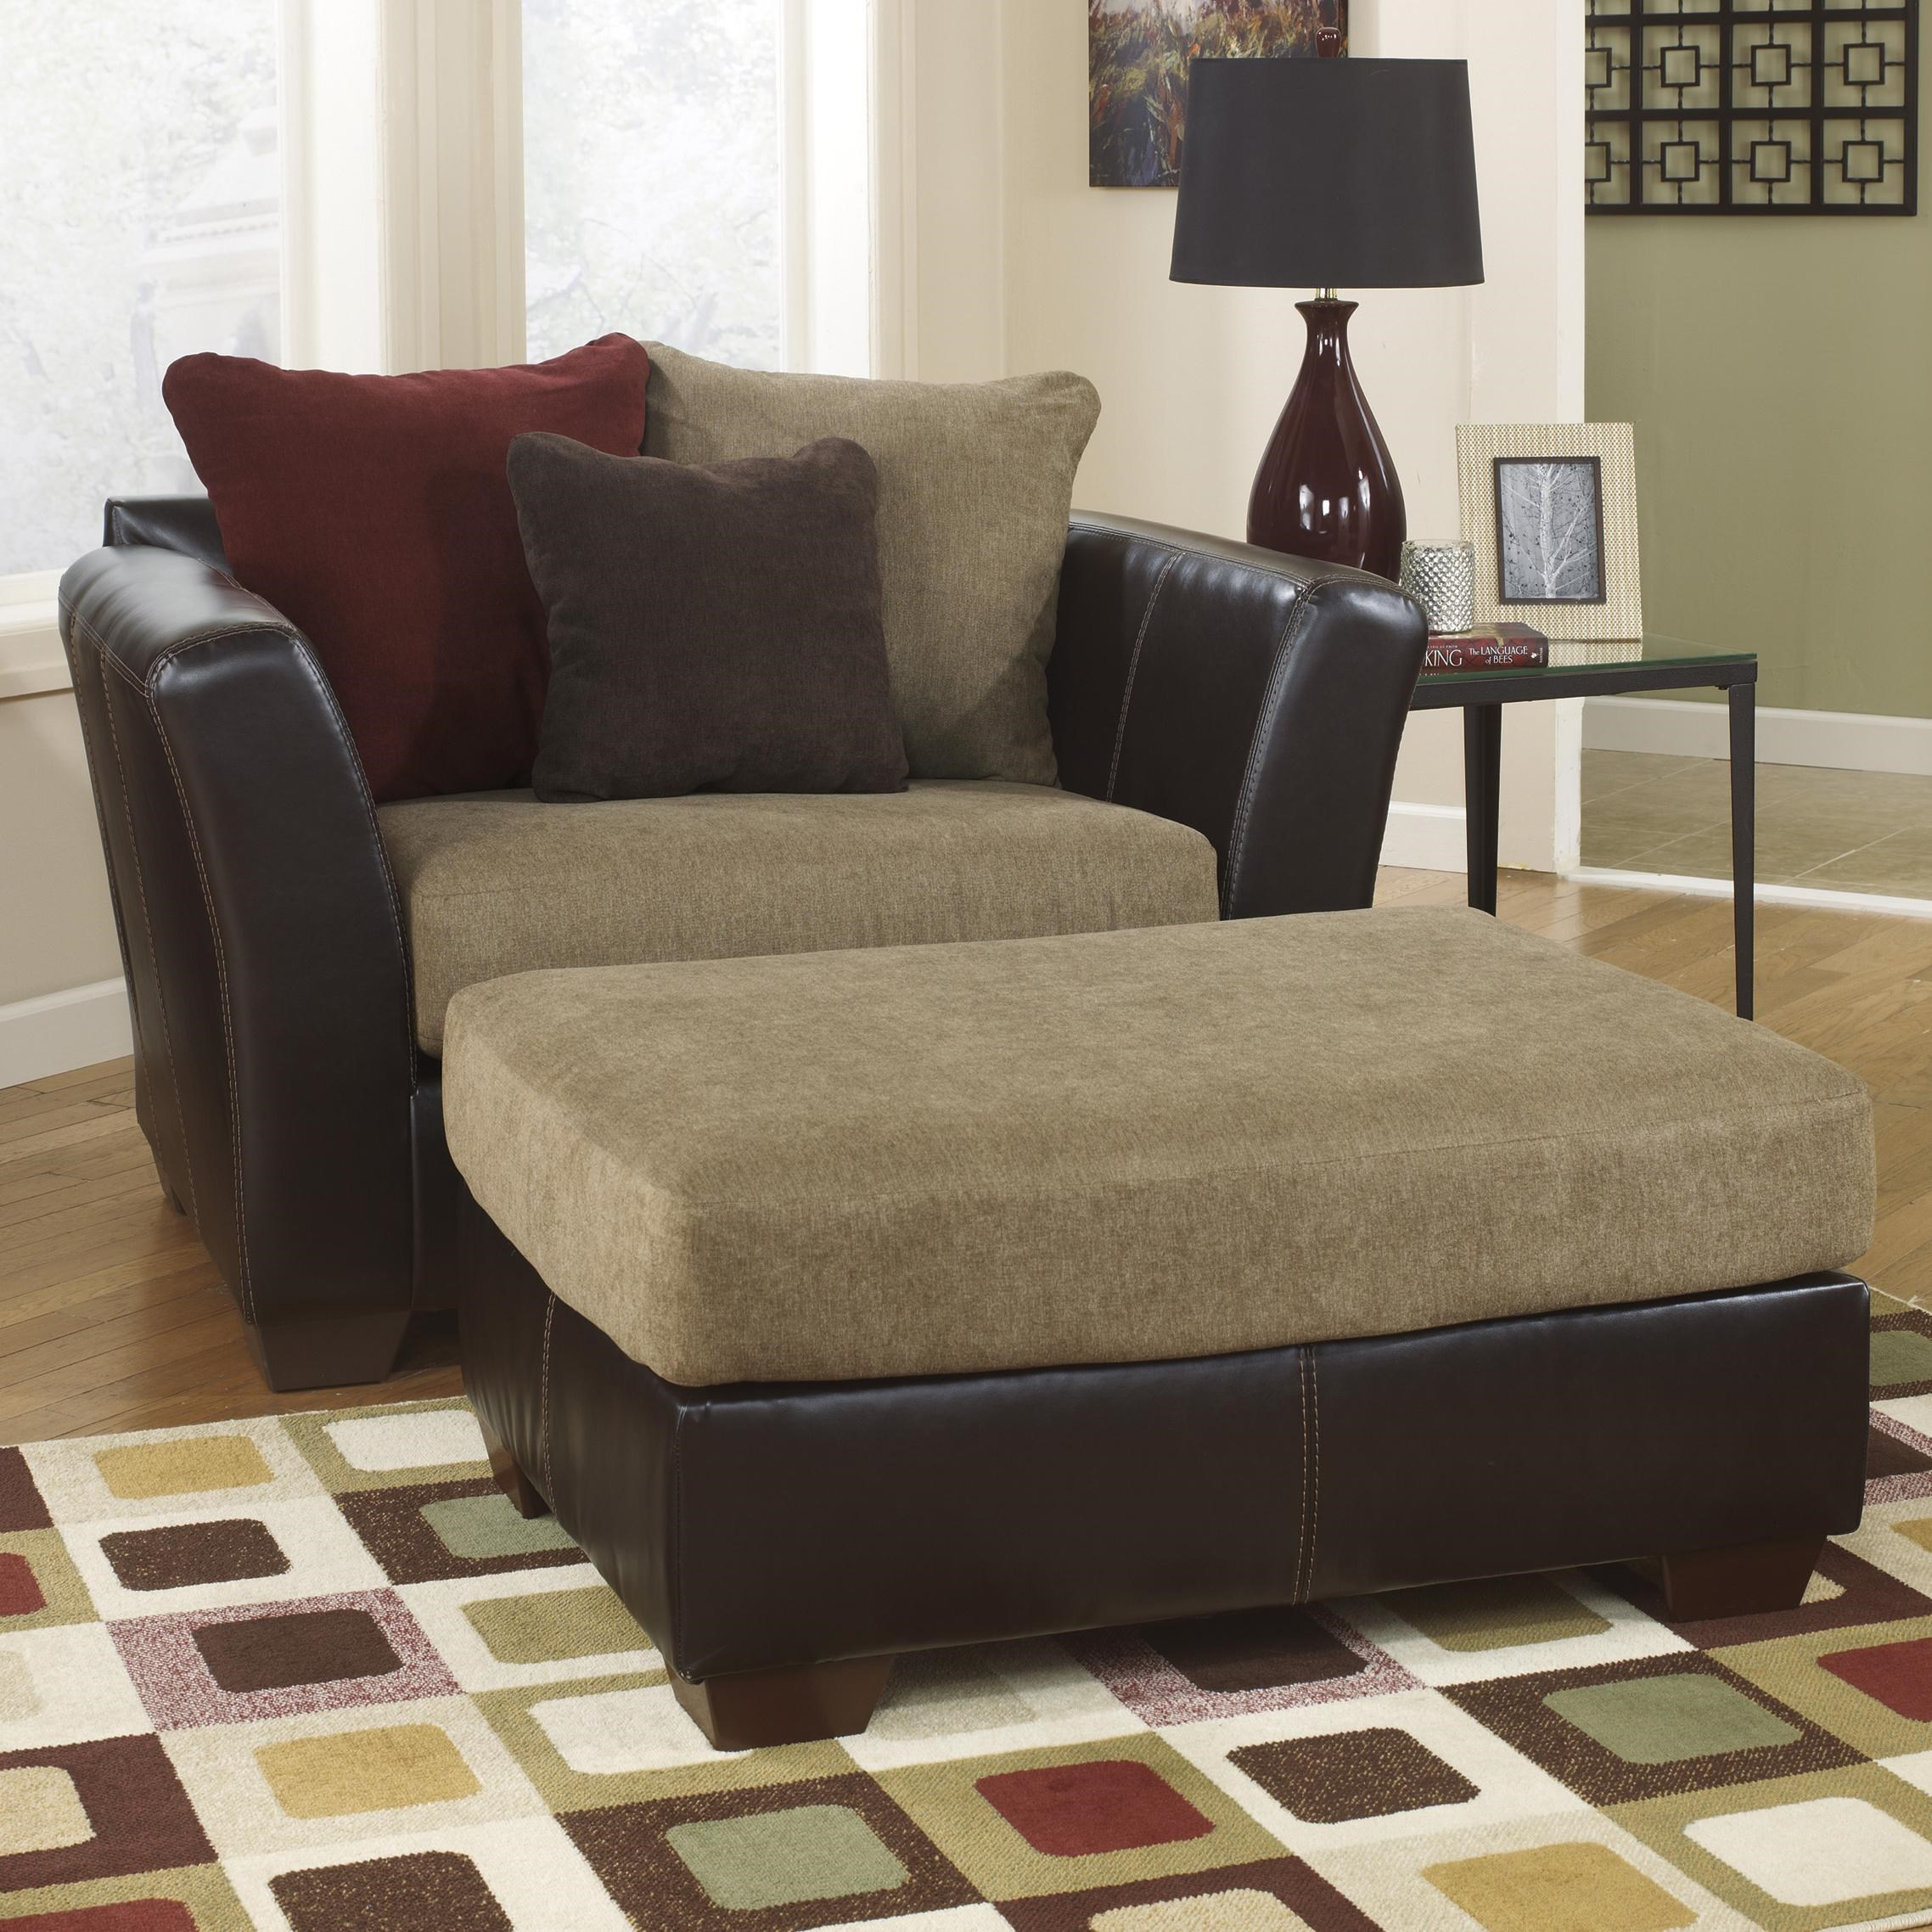 Ashley Furniture Sanya   Mocha Chair And A Half U0026 Ottoman   Lapeer Furniture  U0026 Mattress Center   Chair U0026 Ottoman Sets